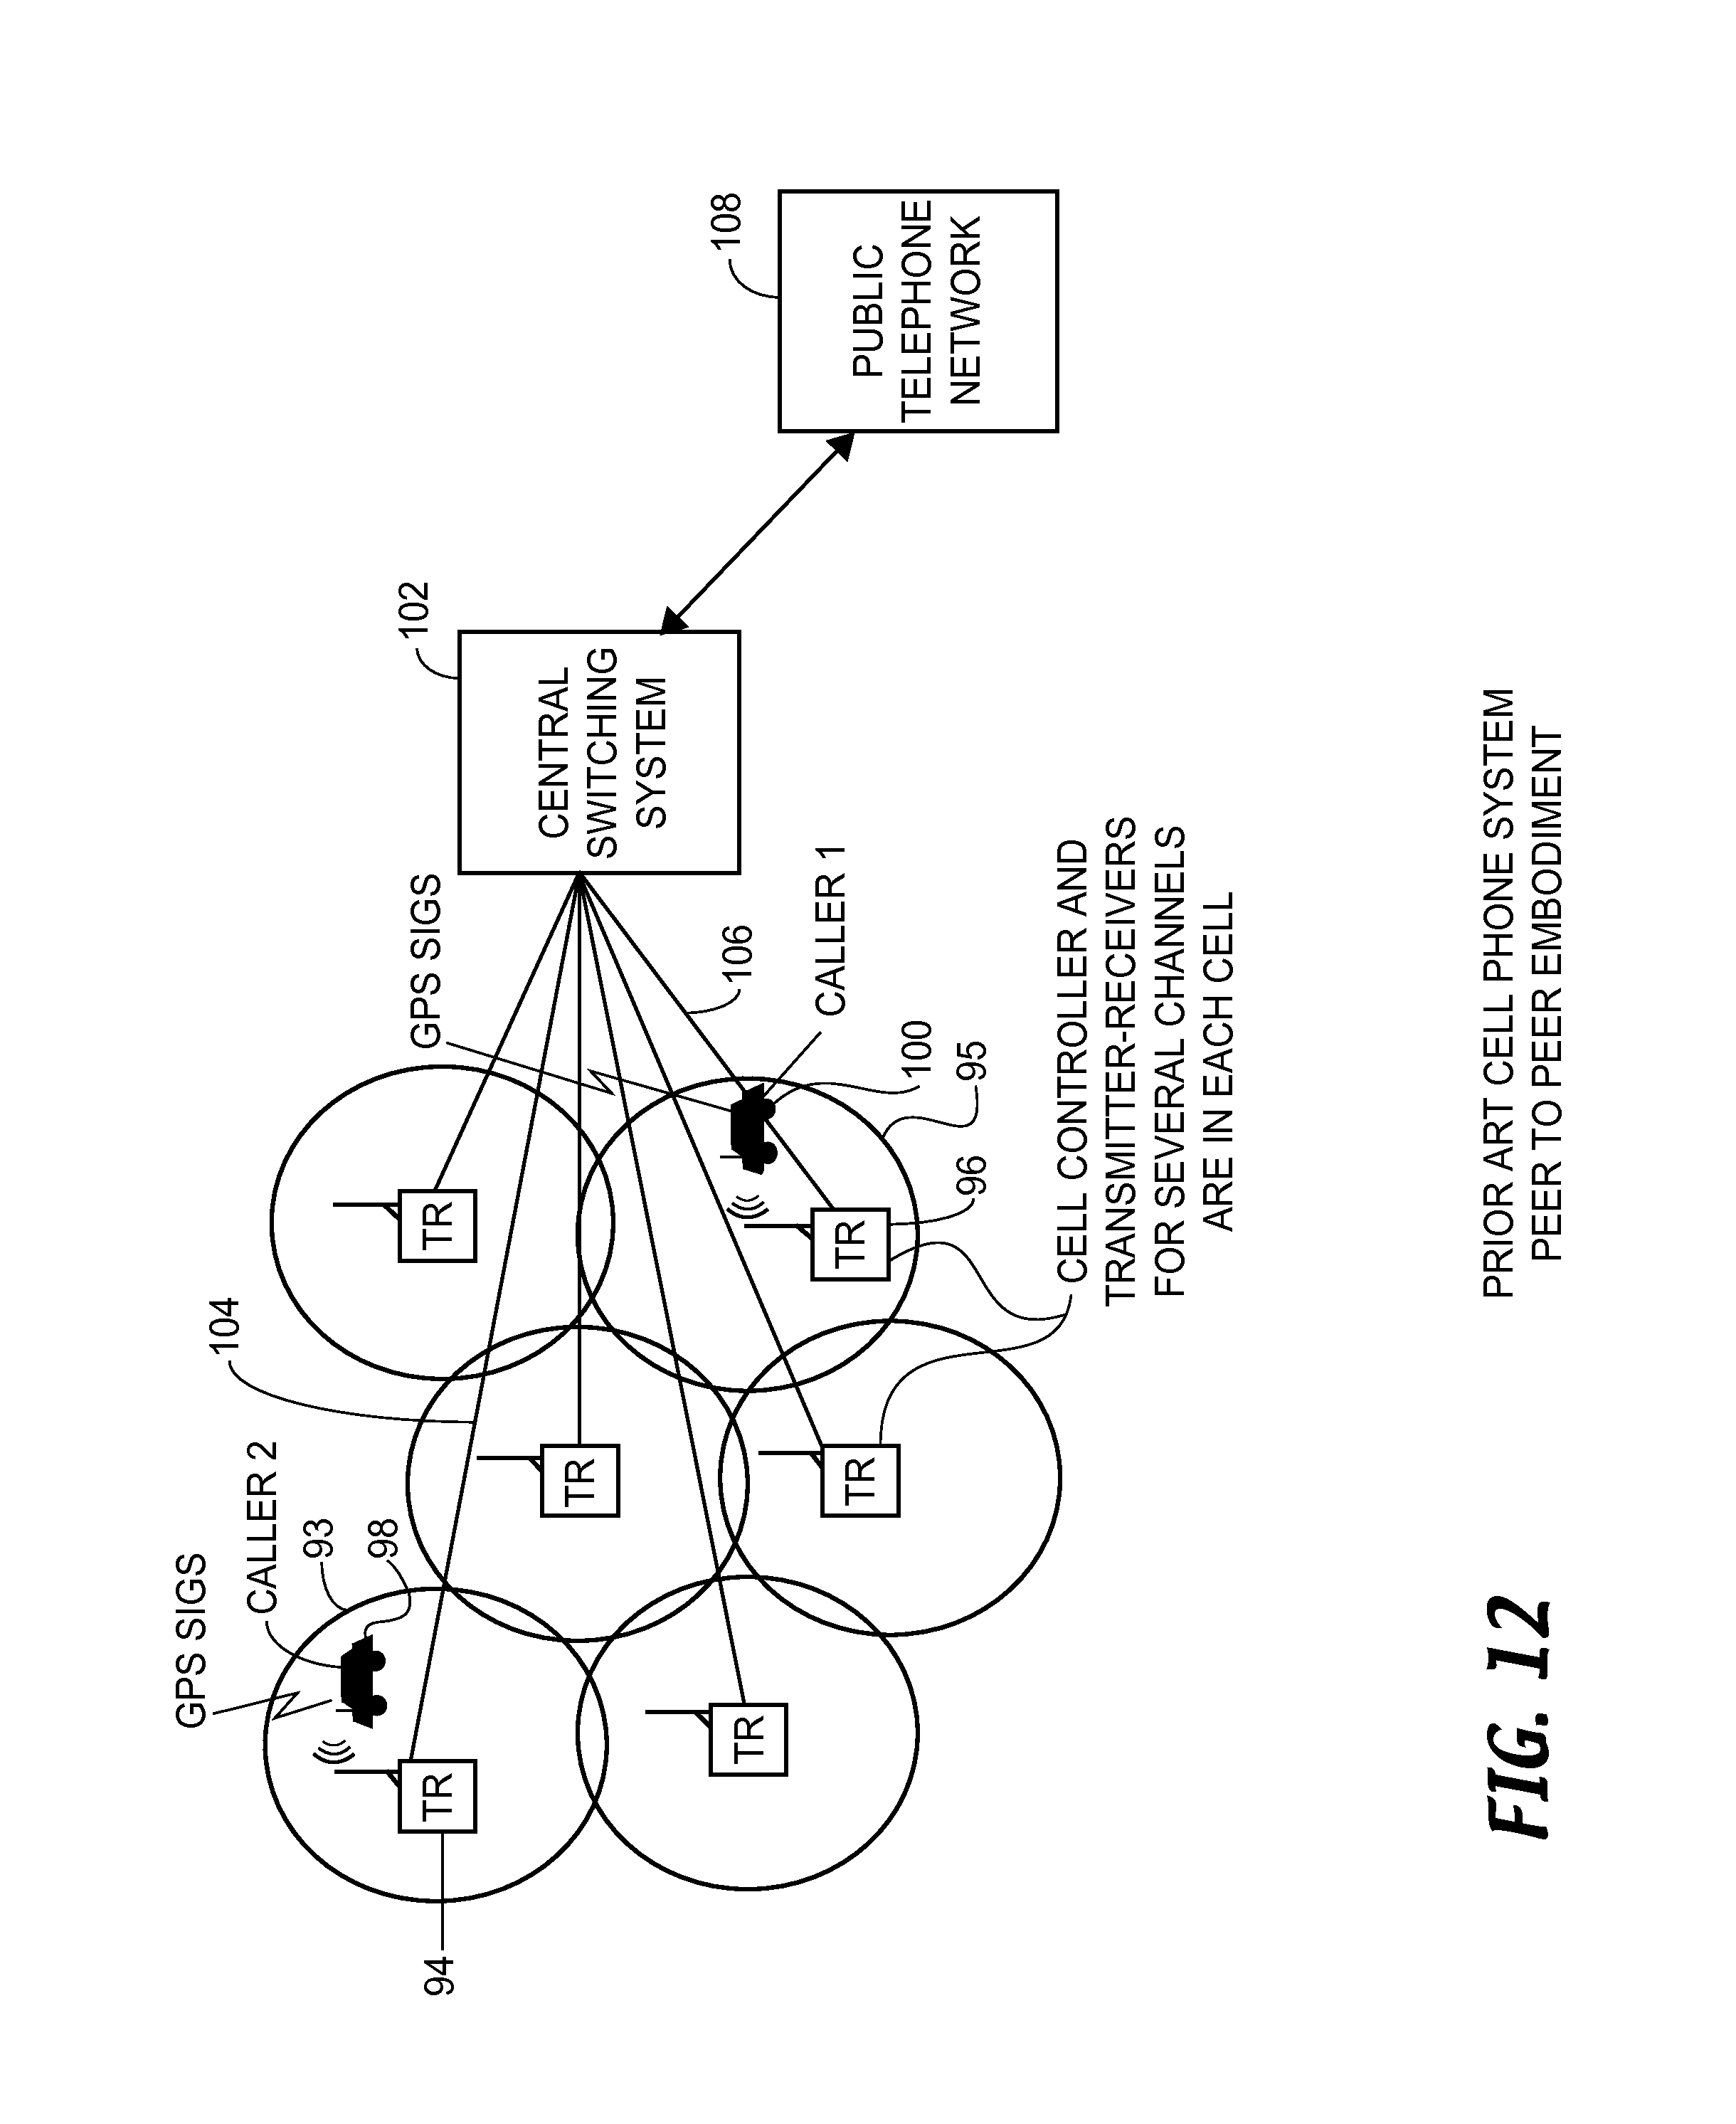 us8798593b2 location sharing and tracking using mobile phones or Fuse Diagram 2000 Lincoln Town Car us8798593b2 location sharing and tracking using mobile phones or other wireless devices patents